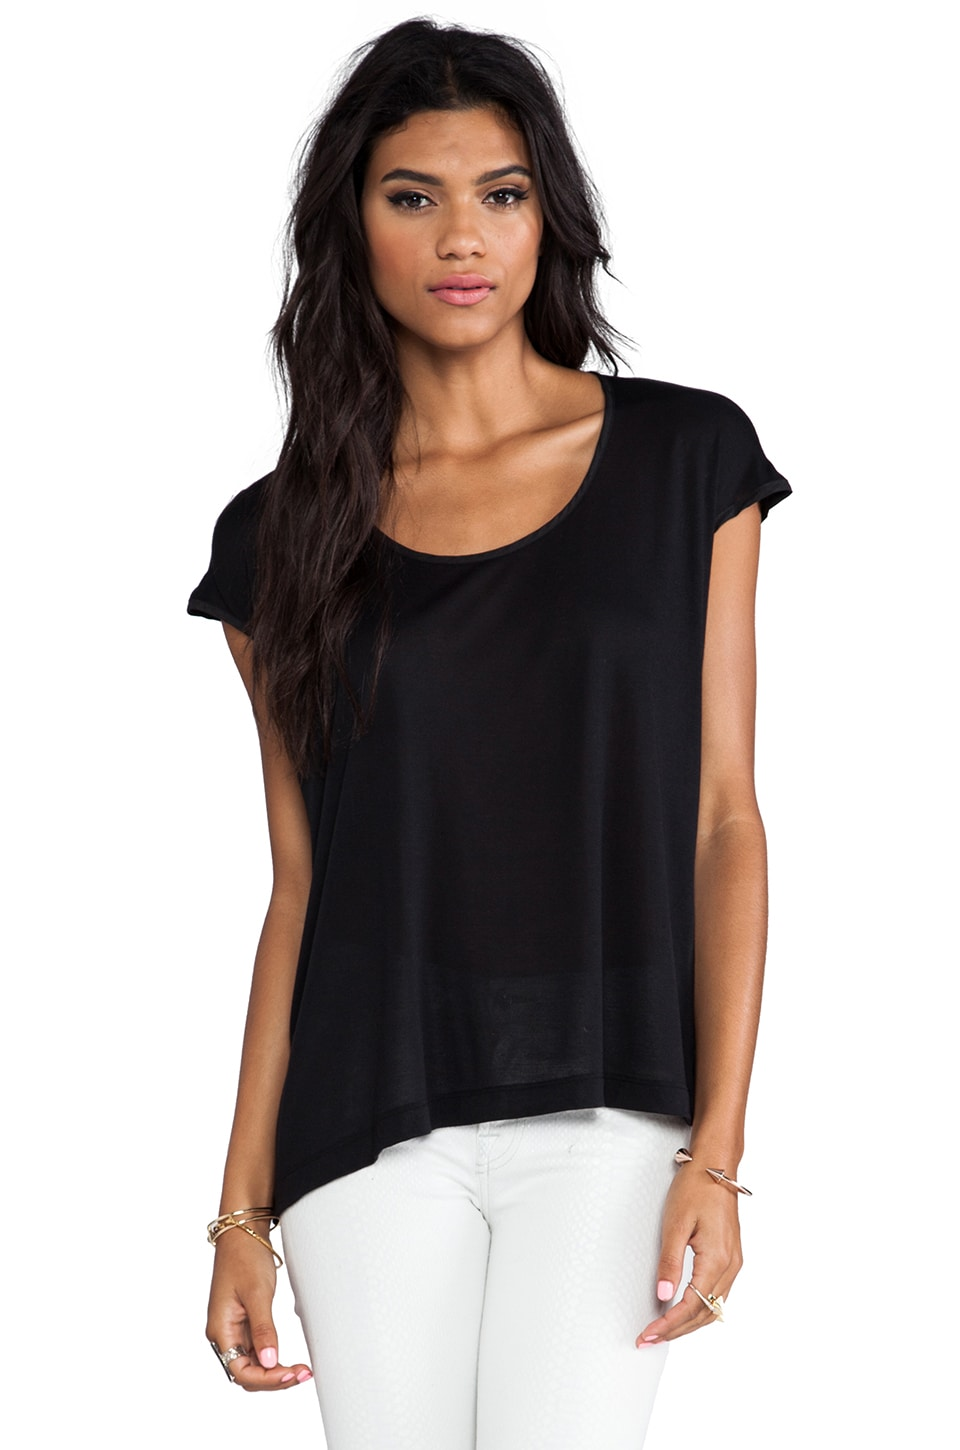 MAX FOWLES Basic Top in Black